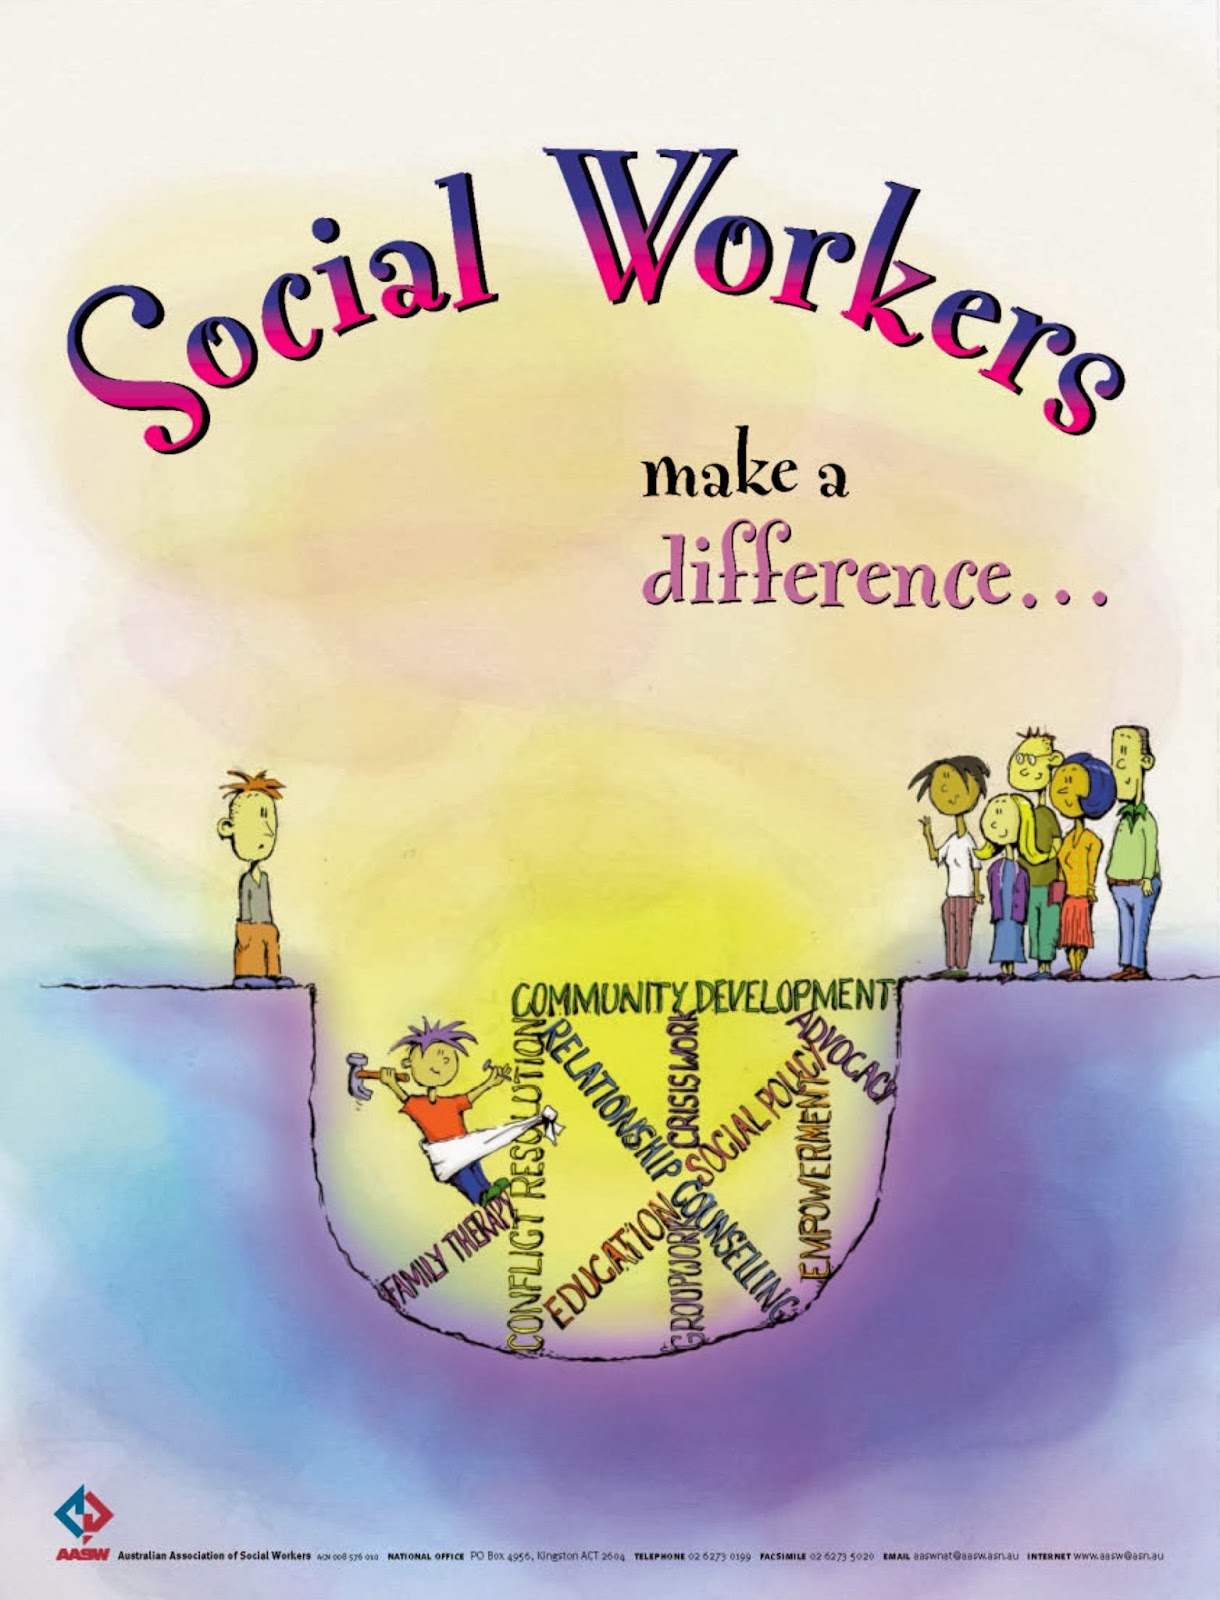 touching lives as a social worker social work 101 in the usa social work profession operates under the statues of the national association of social workers nasw whose mission is to enhance the